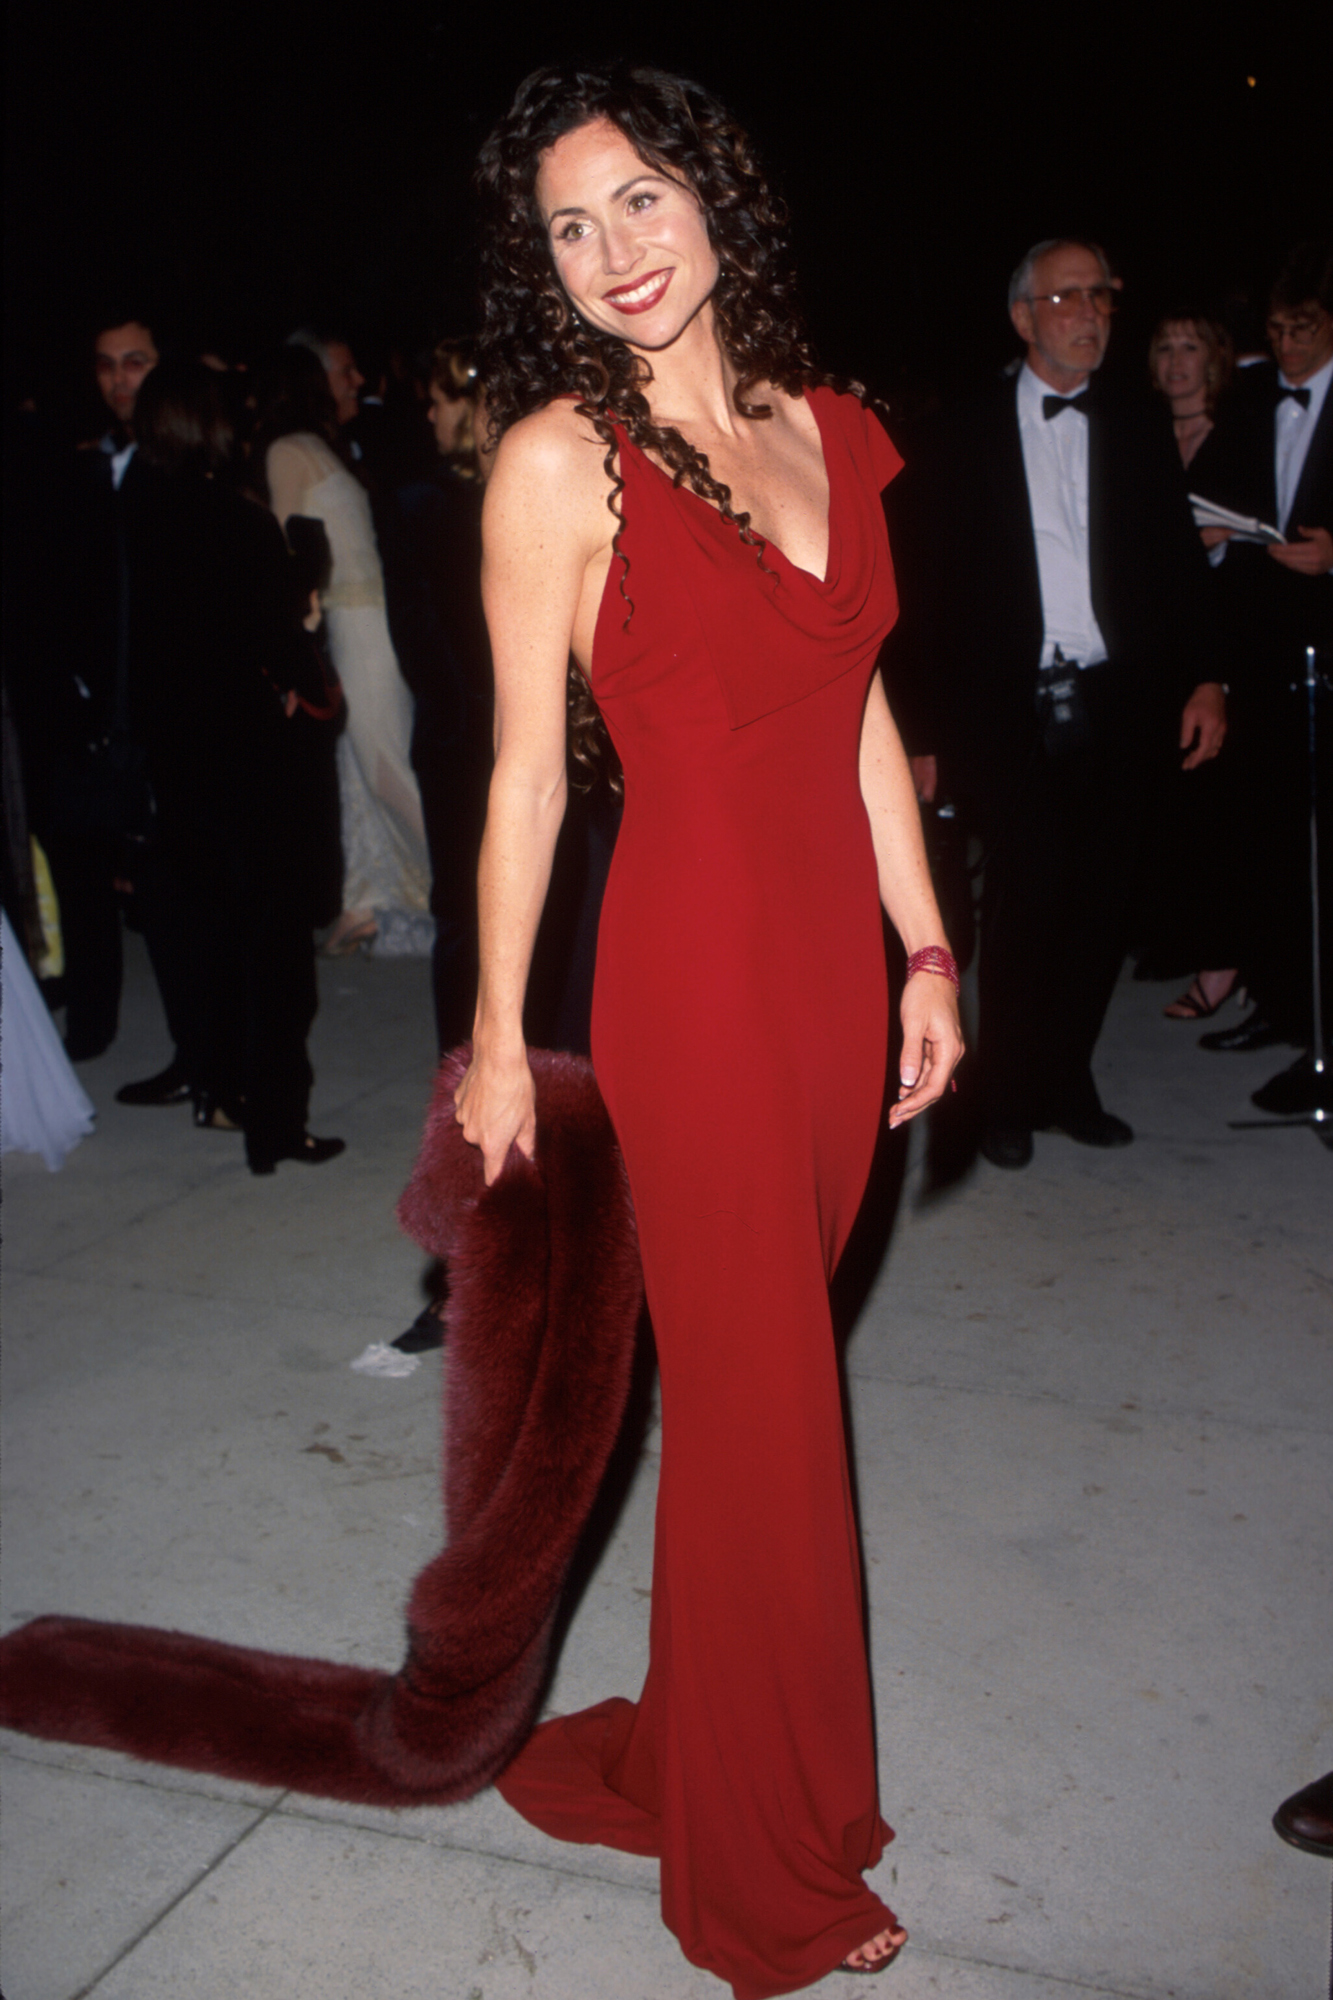 Best Supporting Actress nominee Minnie Driver (Good Will Hunting)